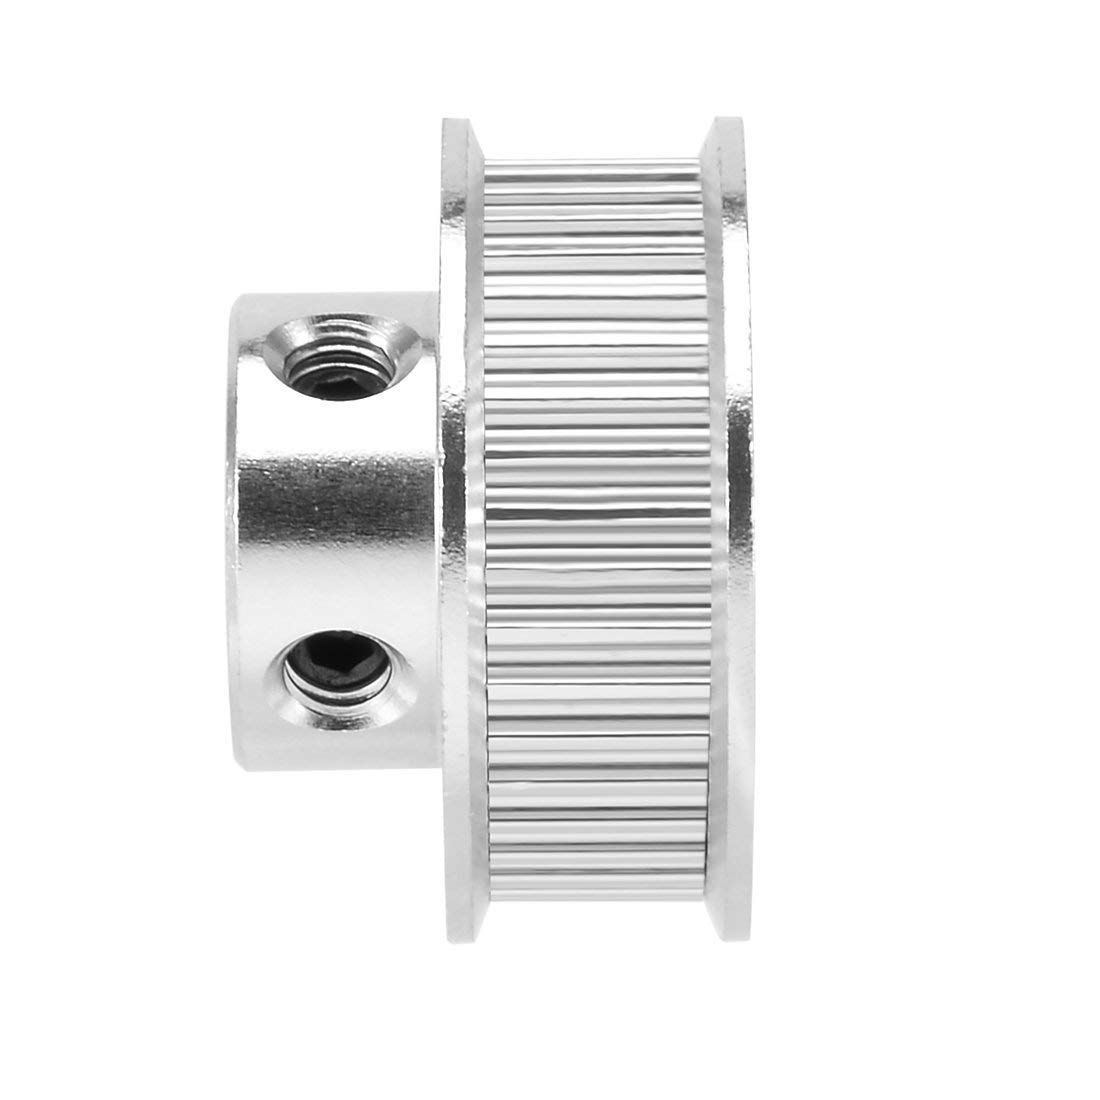 LICTOP 2pcs Aluminum GT2 40 Teeth 8mm//0.31 Bore Timing Belt Pulley Flange Synchronous Wheel for 3D Printer Accessories,Milling Machine 40T-8mm